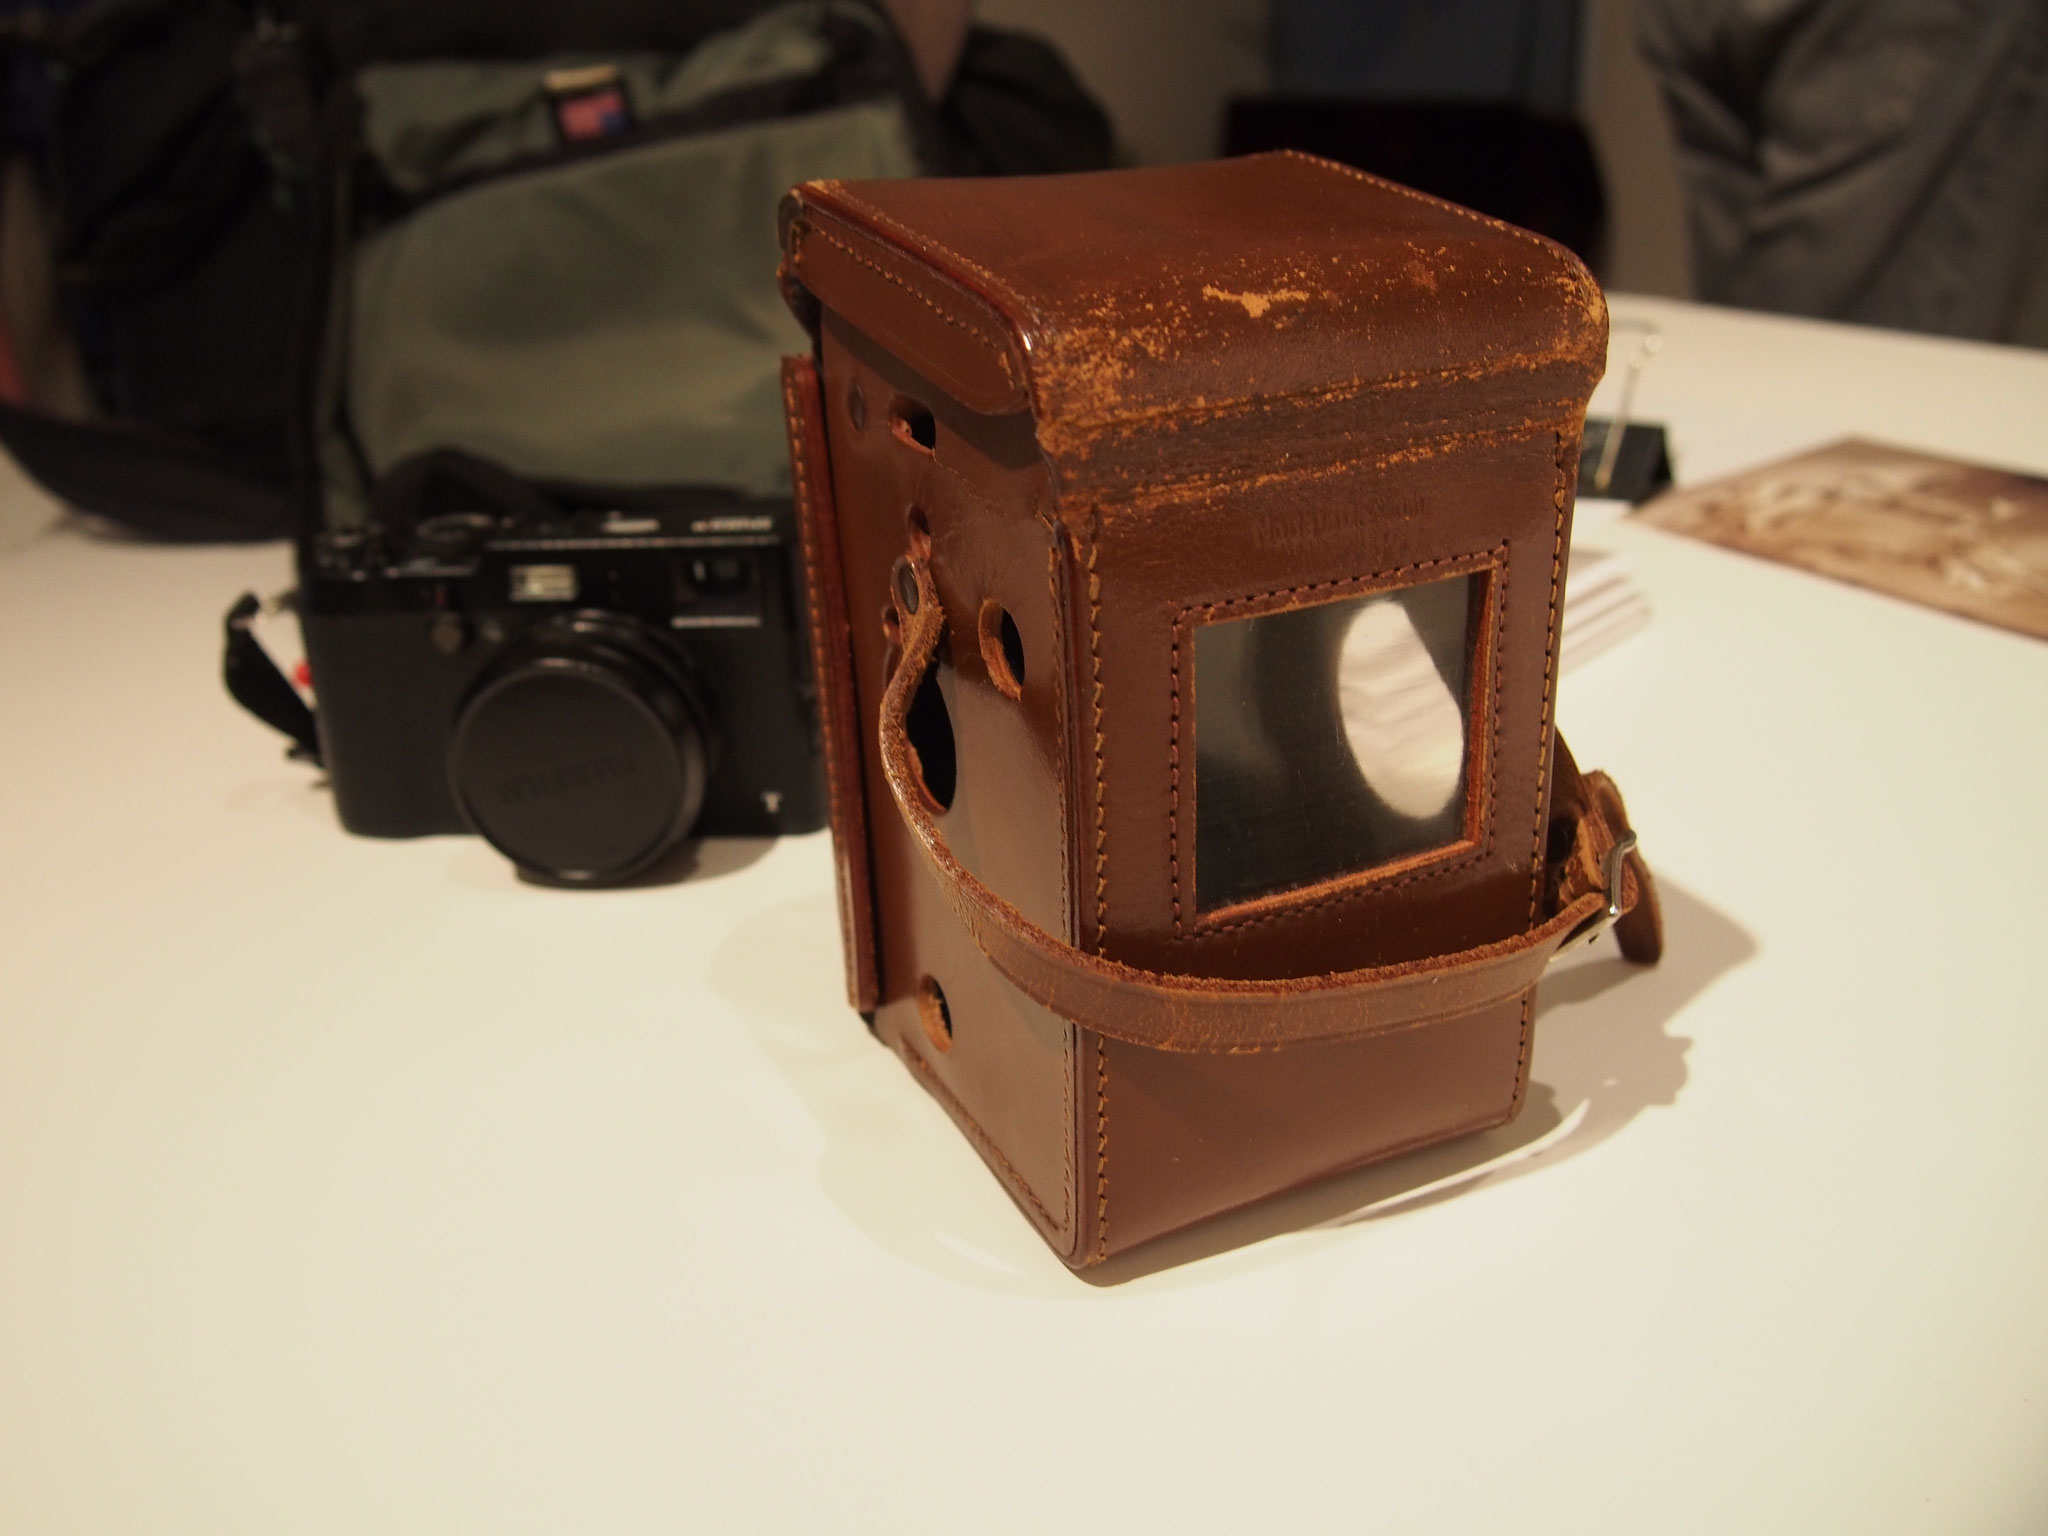 Camera and box belonging to Pete Corr photographed by Sae Kimura